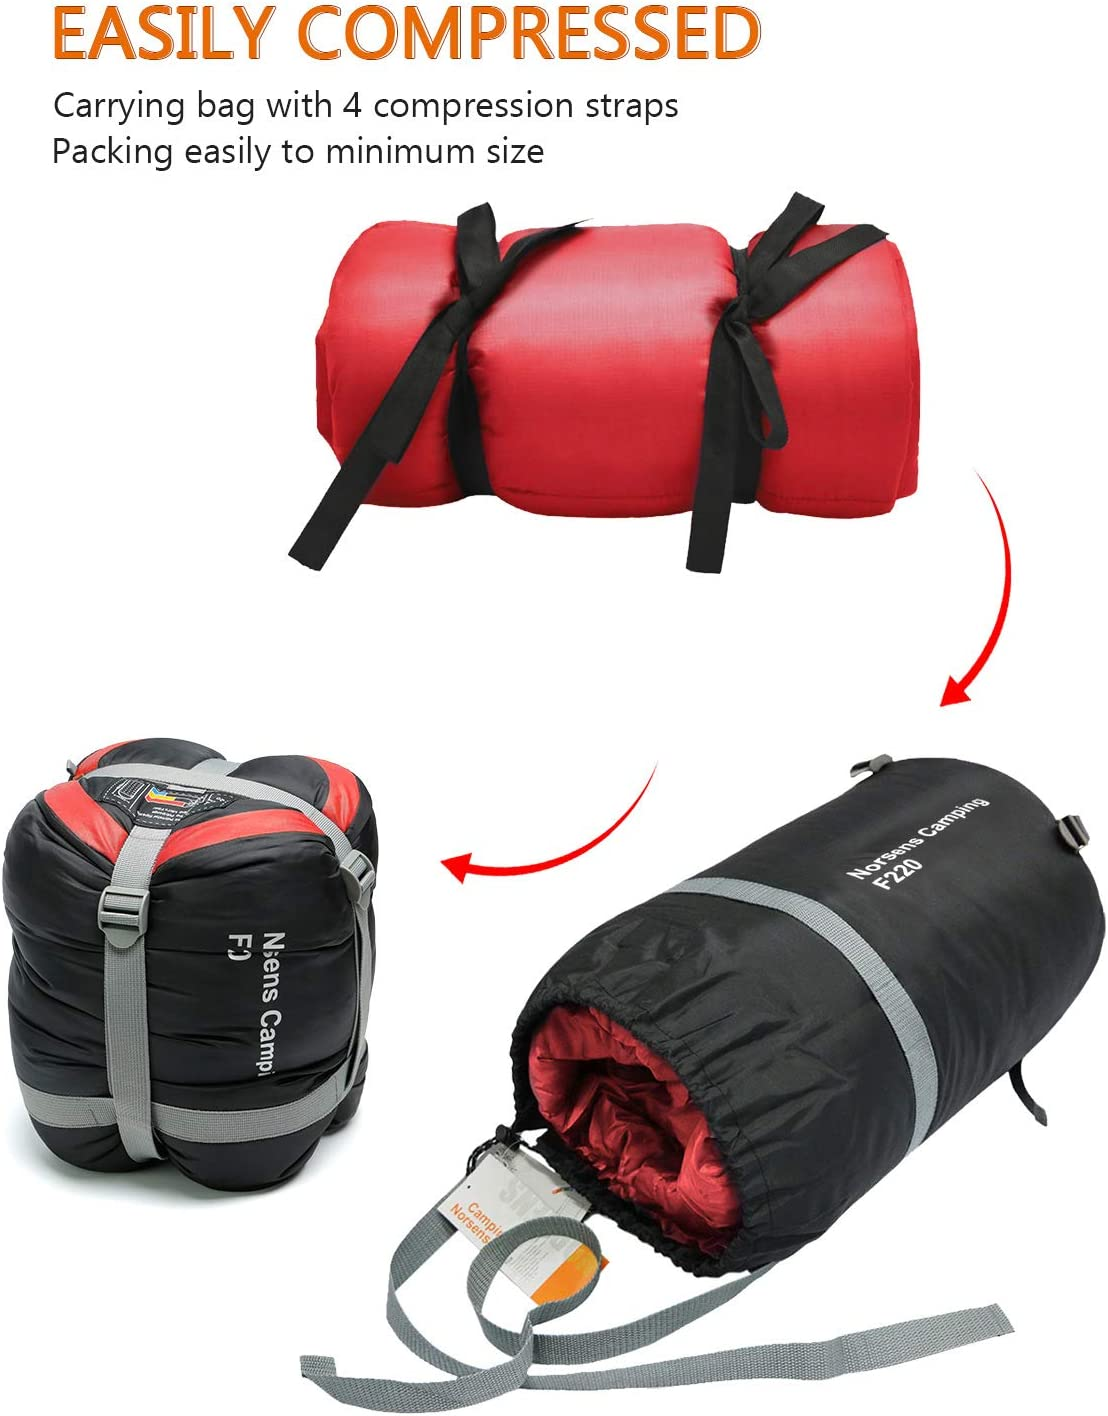 3 Season Warm /& Cold Weather Sleeping Bags for Hiking,Backpacking NORSENS Camping Sleeping Bags Lightweight Compact Sleeping Bag for Adults Kids